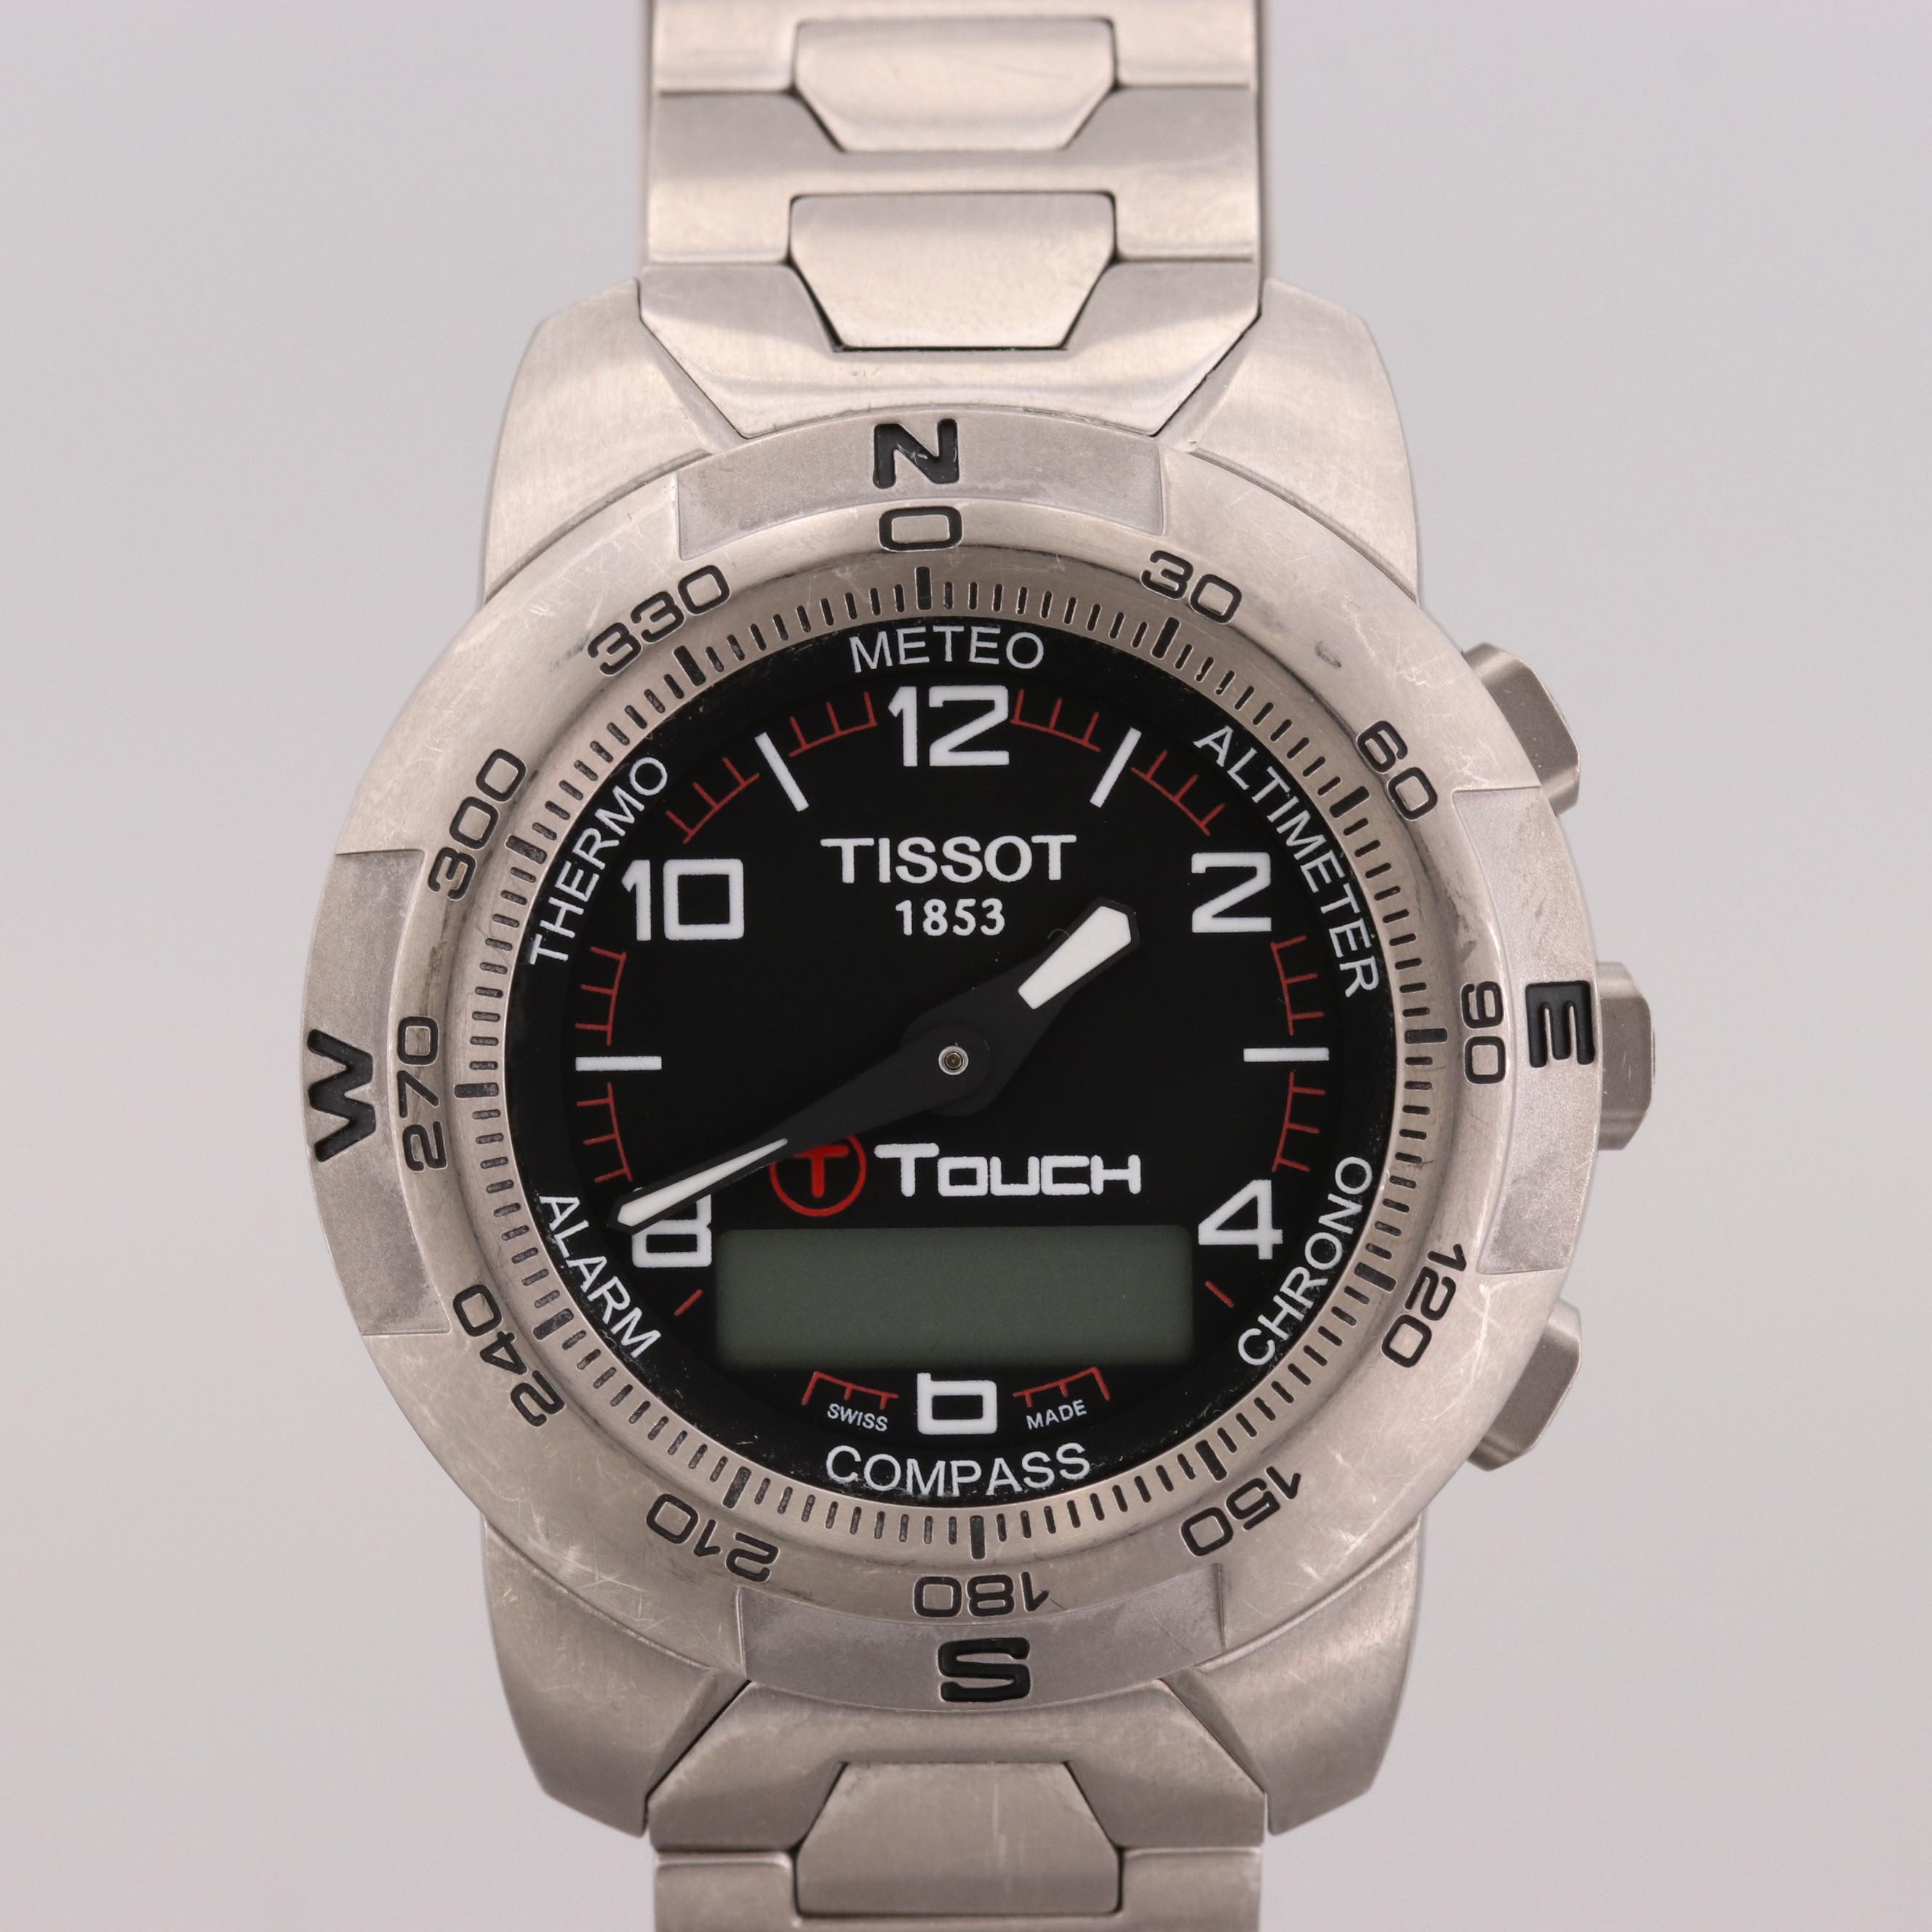 Tissot T-Touch Titanium Quartz Multifunction Wristwatch